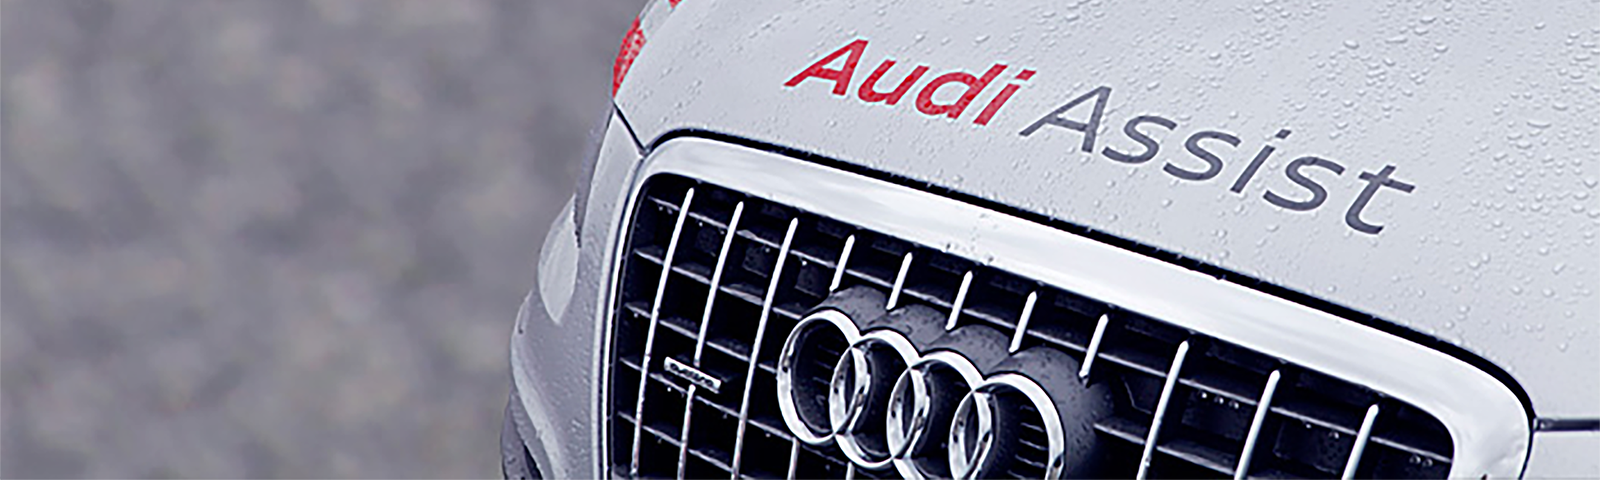 Audi Assist Roadside Assistance